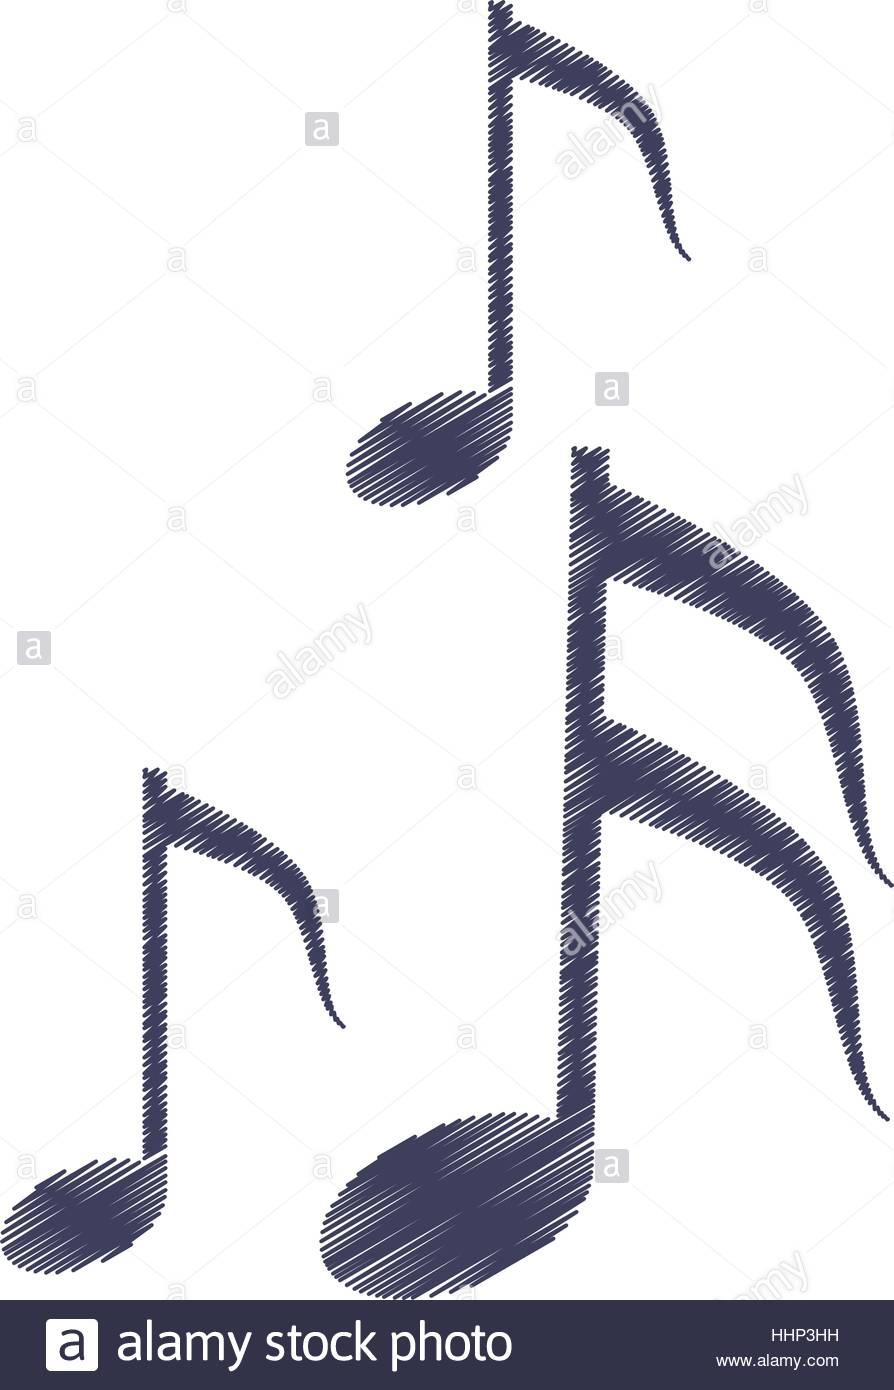 894x1390 Drawing Musical Note Melody Symbol Stock Vector Art Amp Illustration